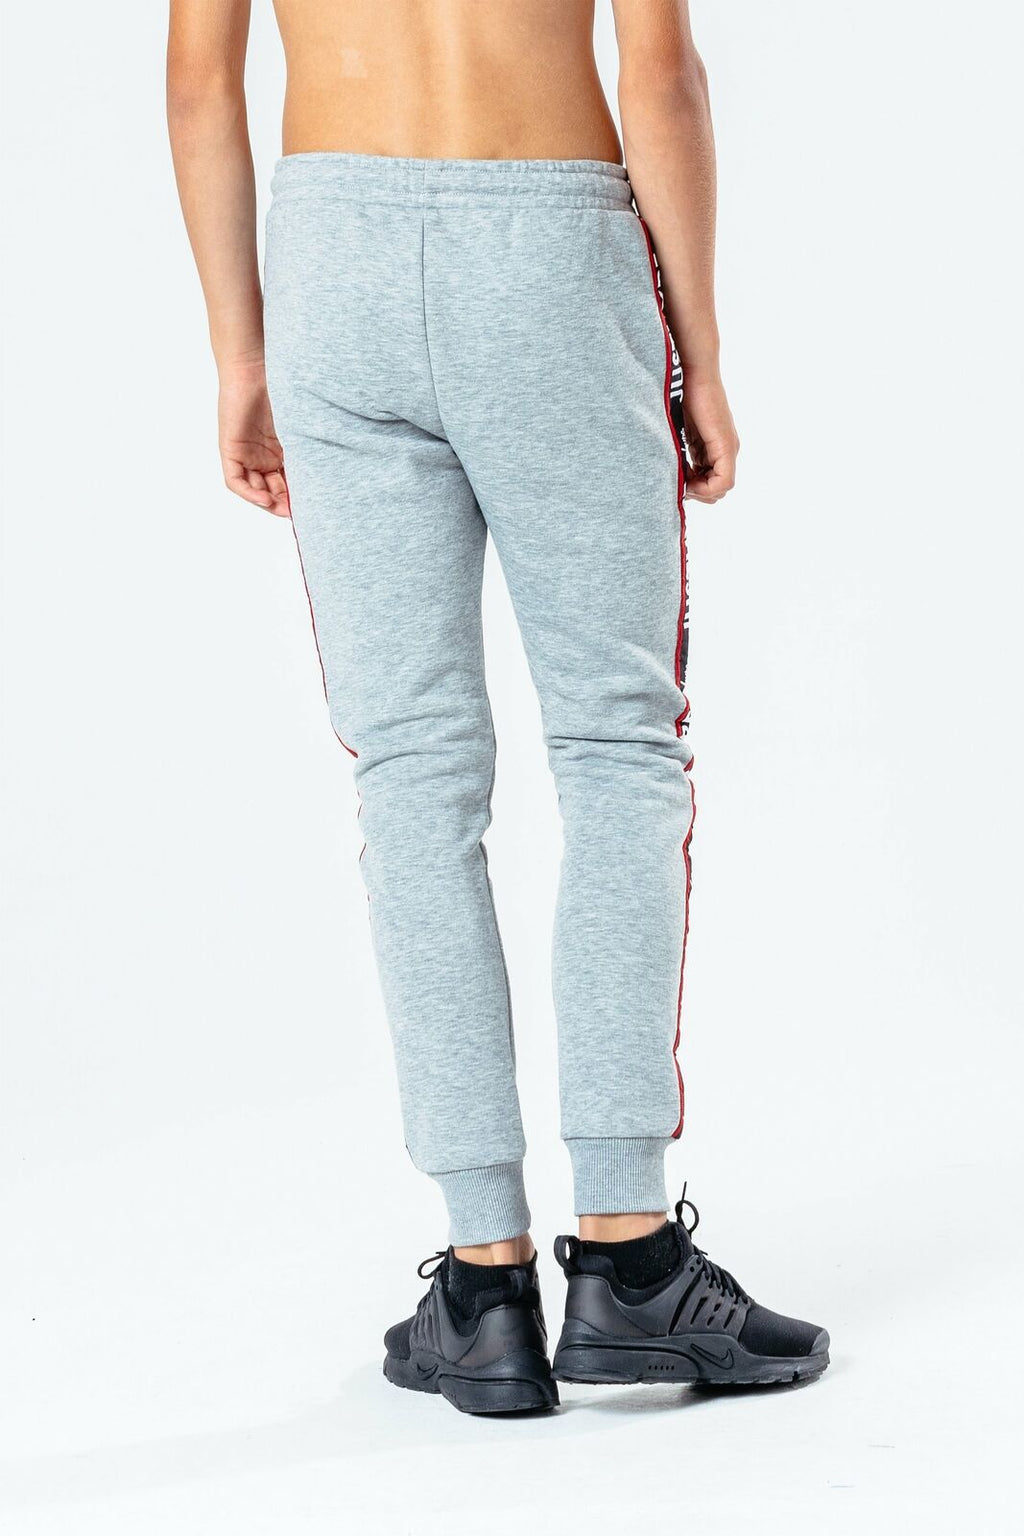 JH Tape Kids Joggers - Grey